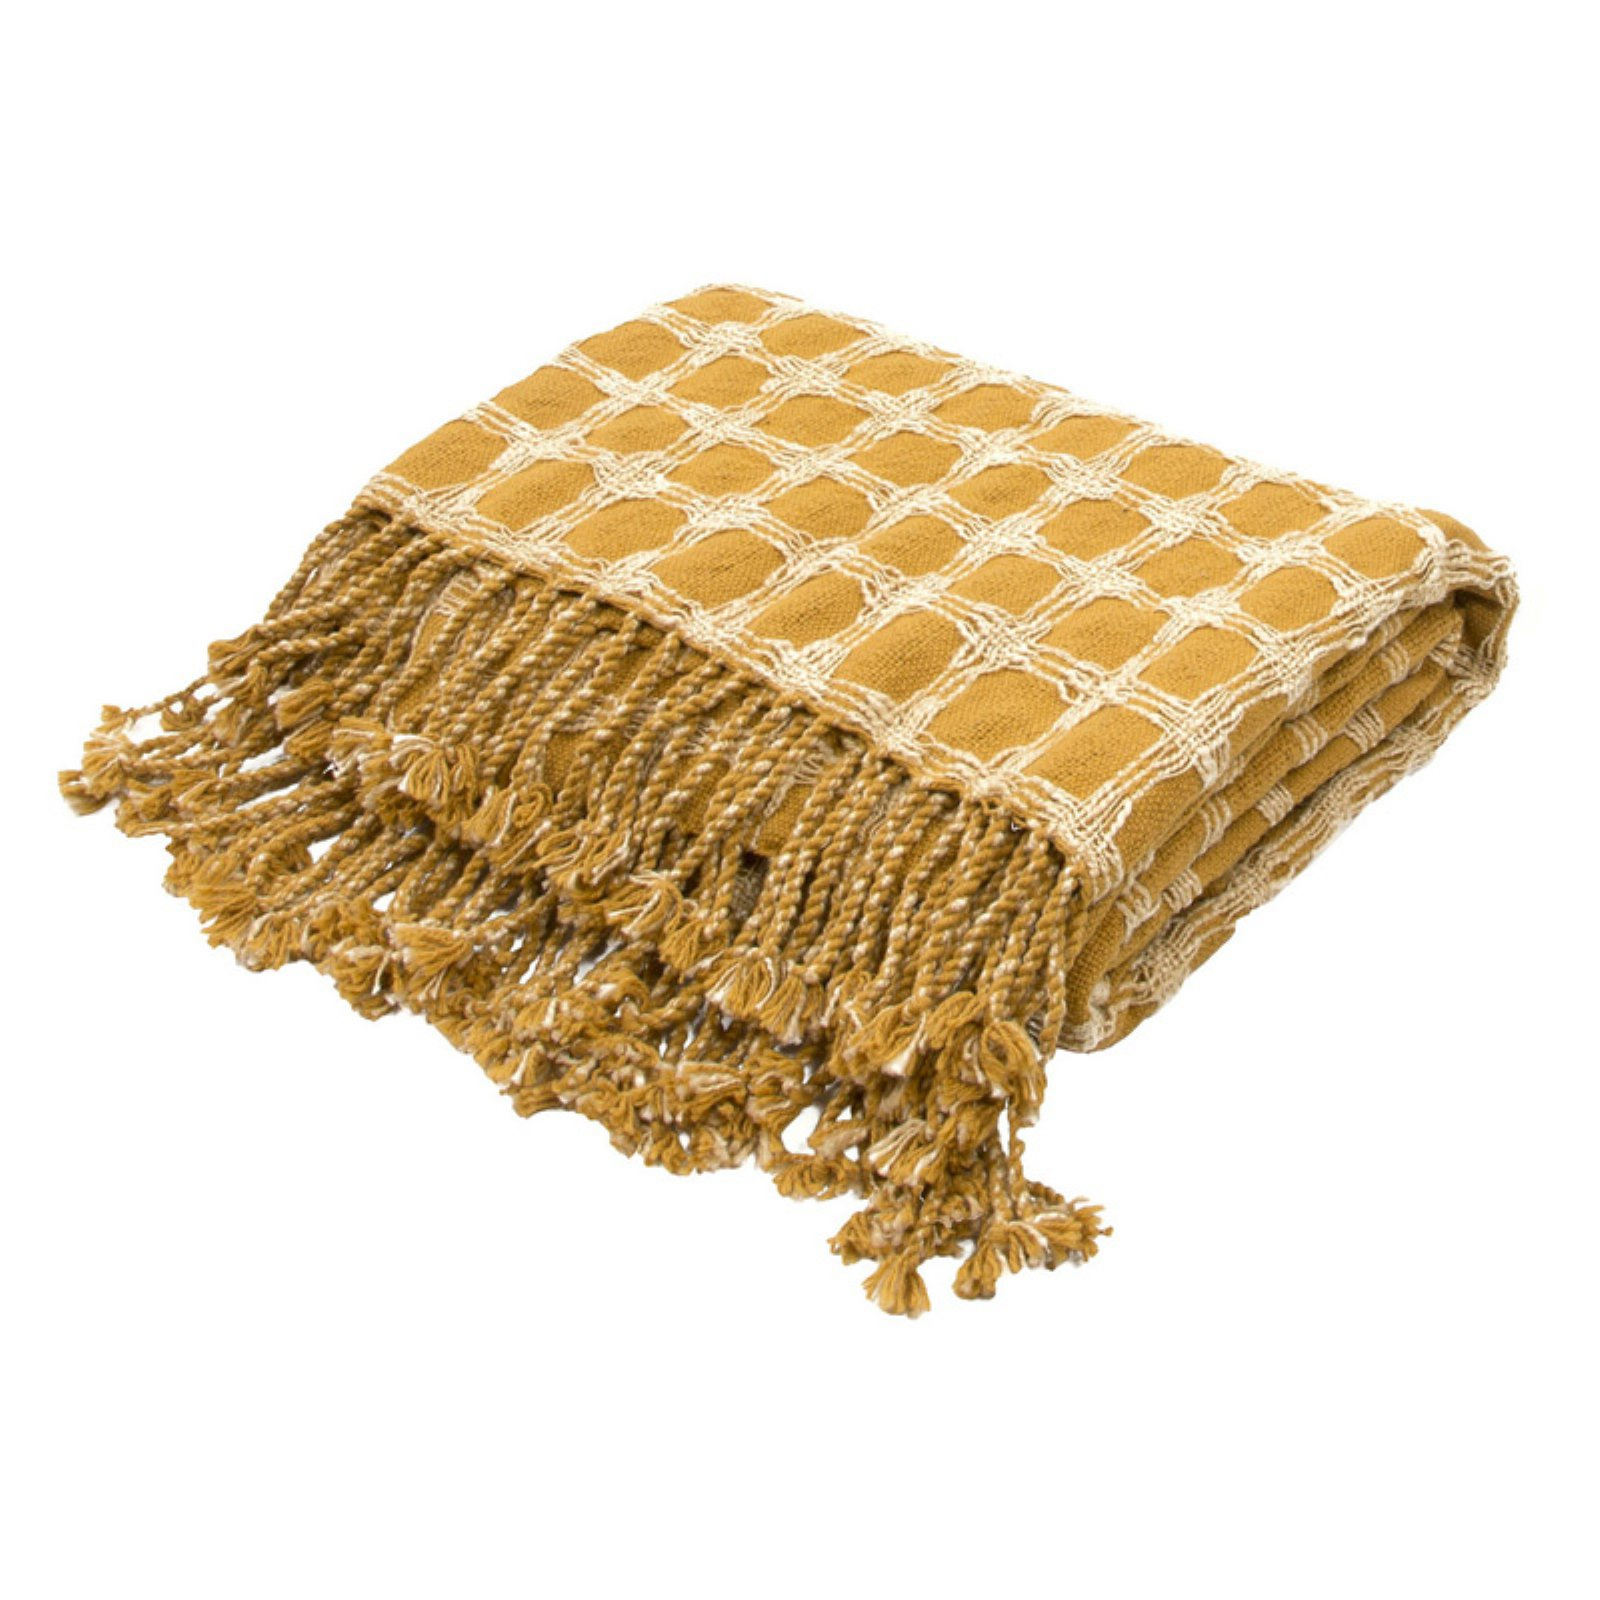 Jaipur Cache Geometric Cotton Throw